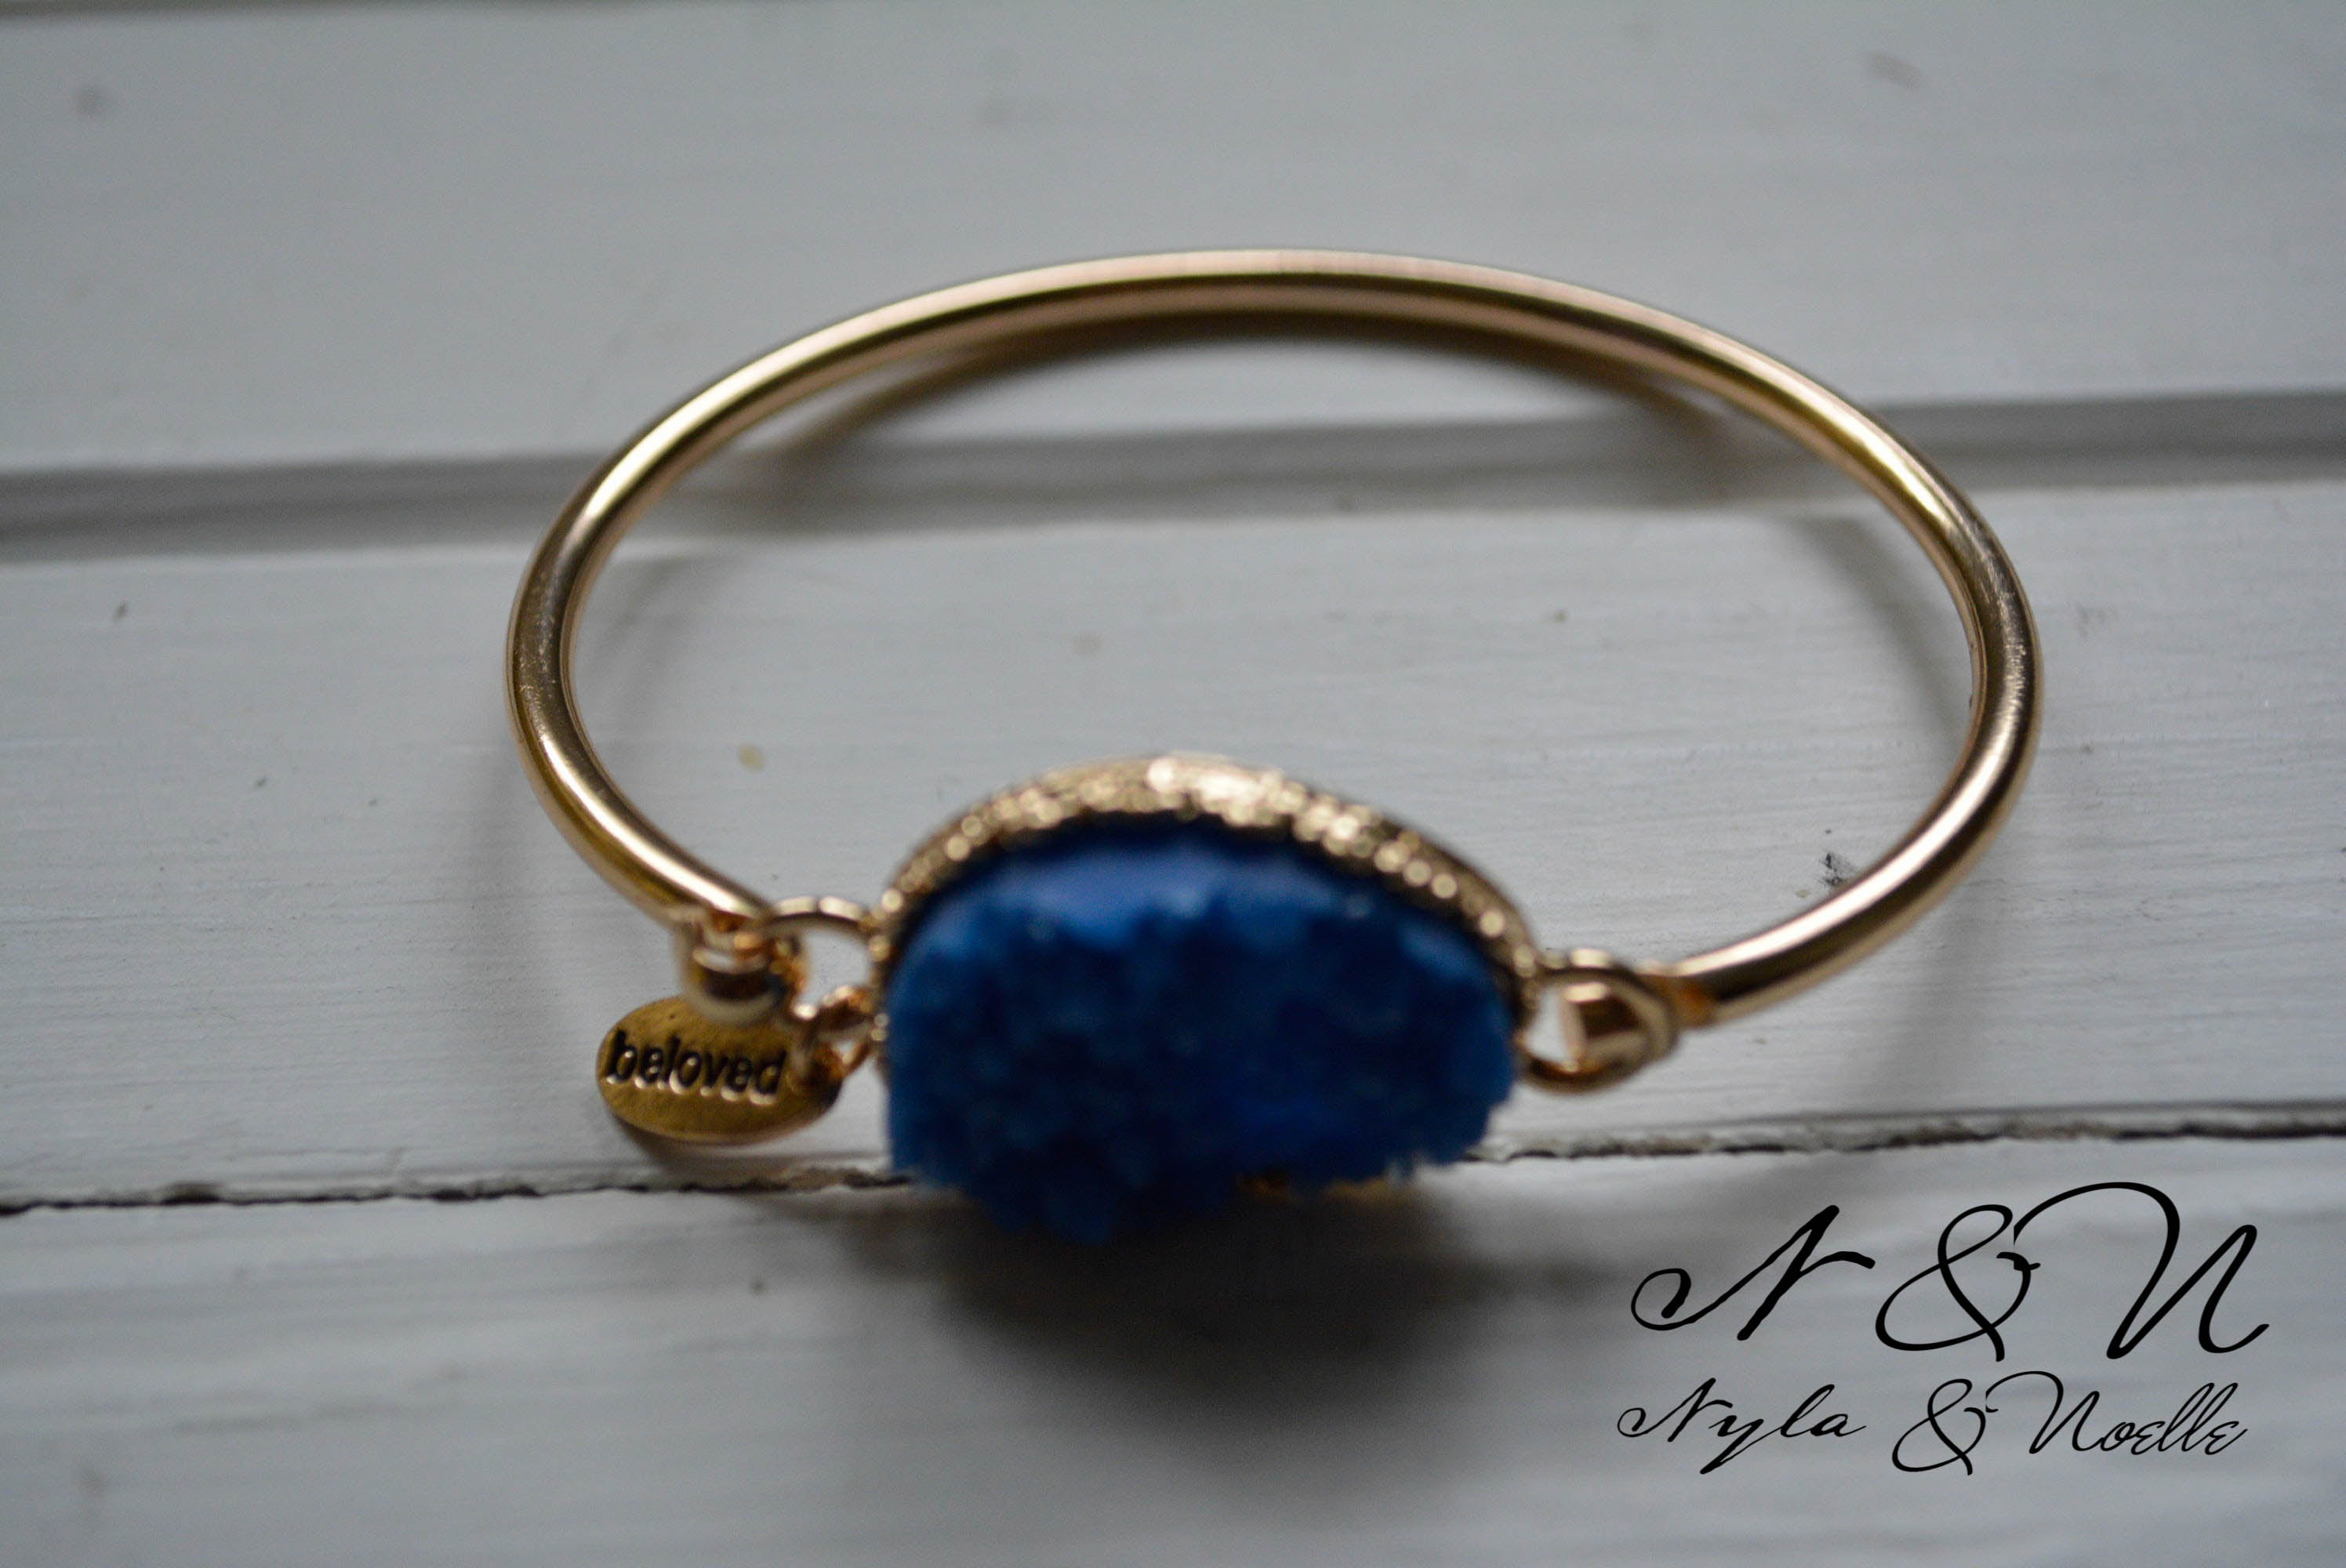 BRAZEN BLUE - Gold Tone Bangle with Blue Druzy Stone